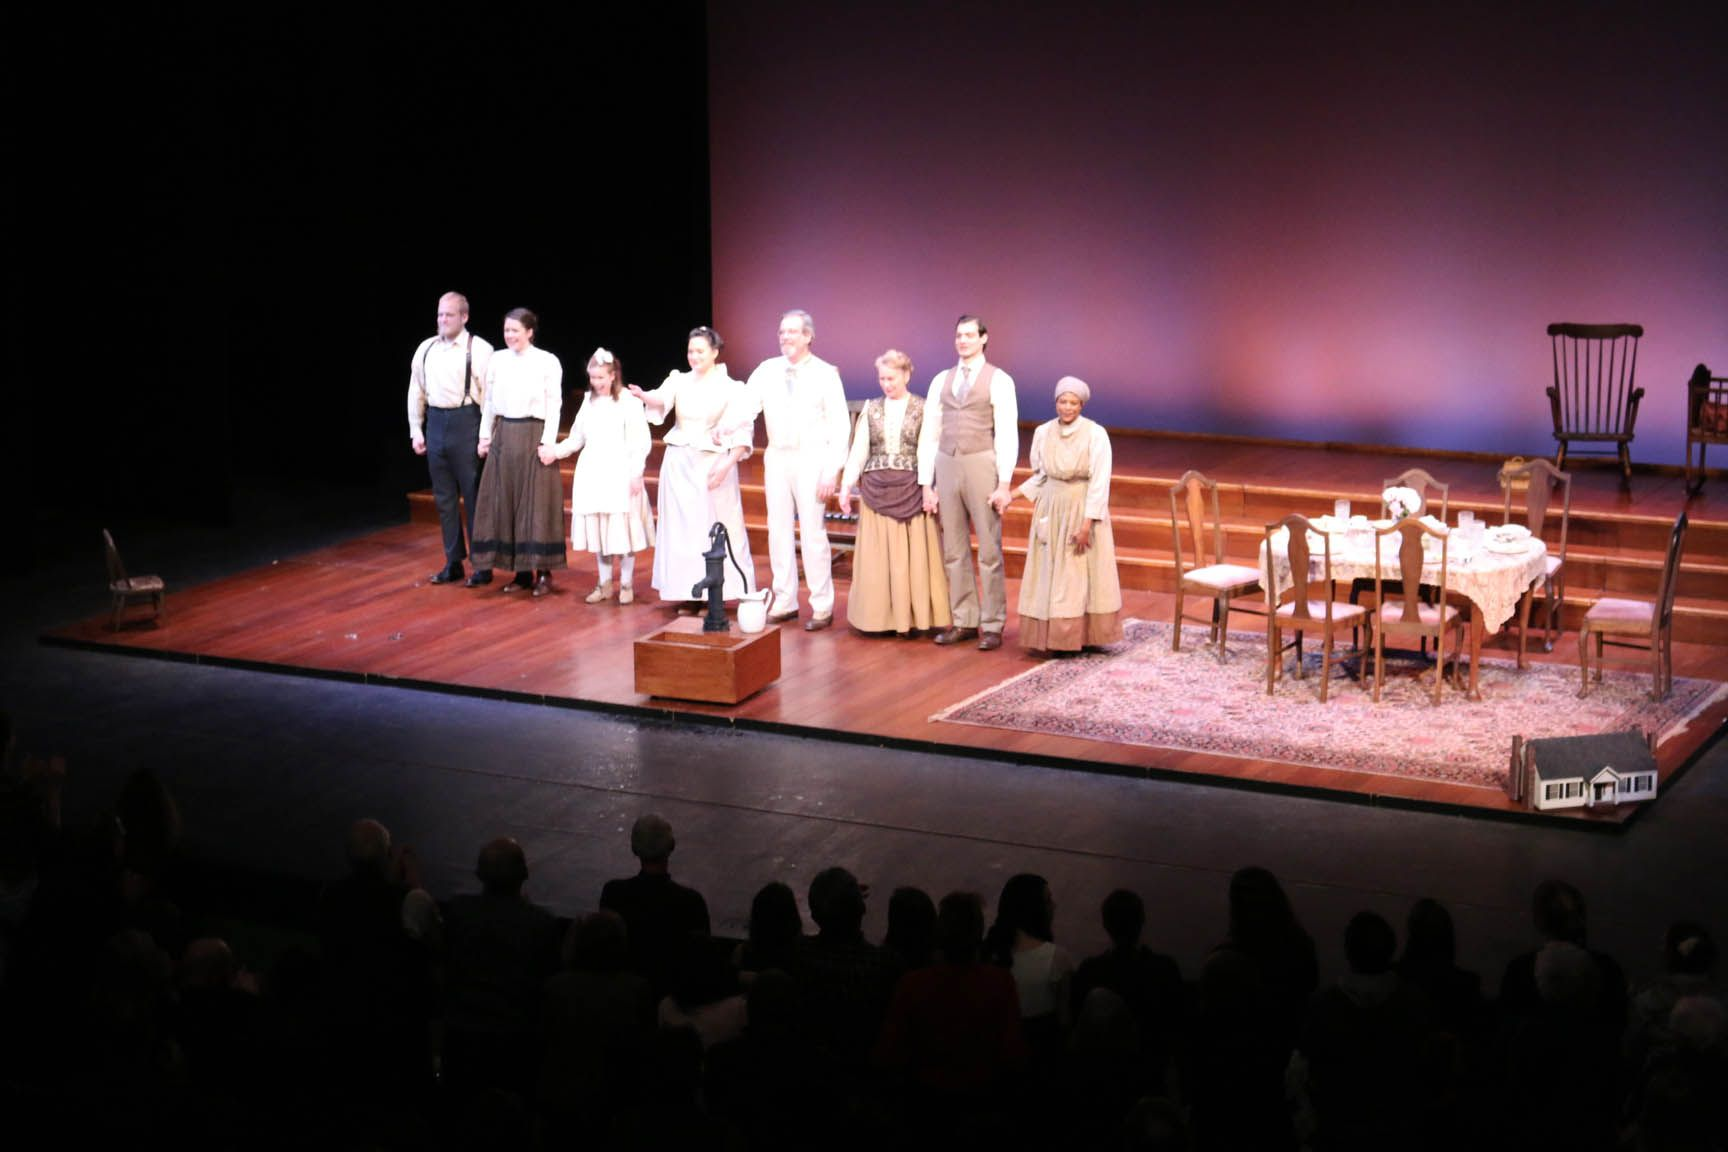 The Miracle Worker Cast Of Montana Repertory Theater Receives A Standing Ovation On Feb 11 2014 The Miracle Worker It Cast Good Times